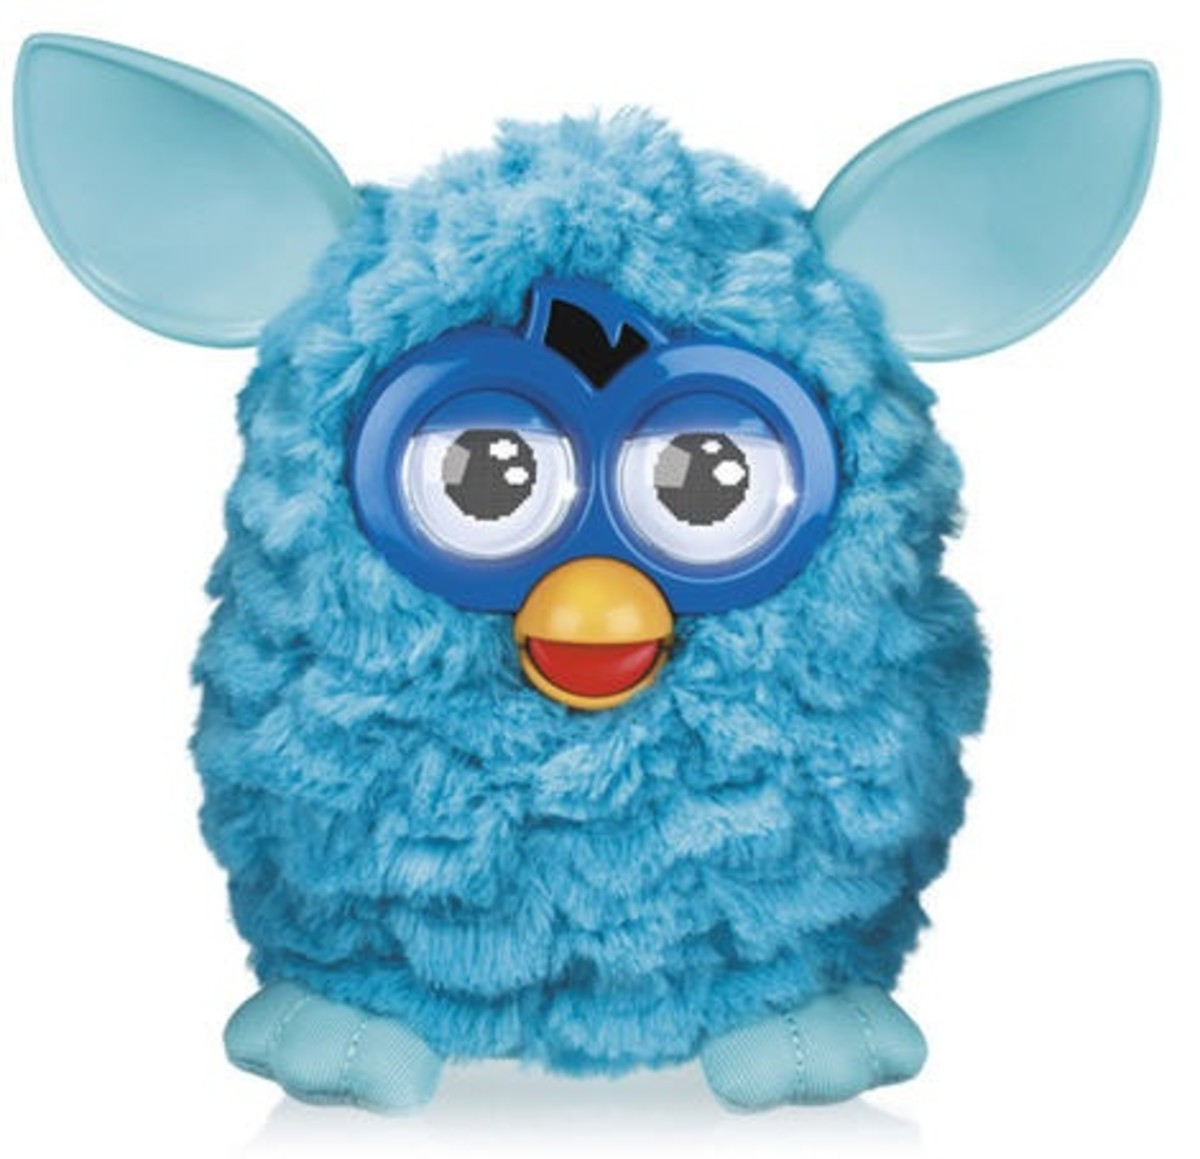 The New Furby For 2012 - Release Date, Price, Buy Online